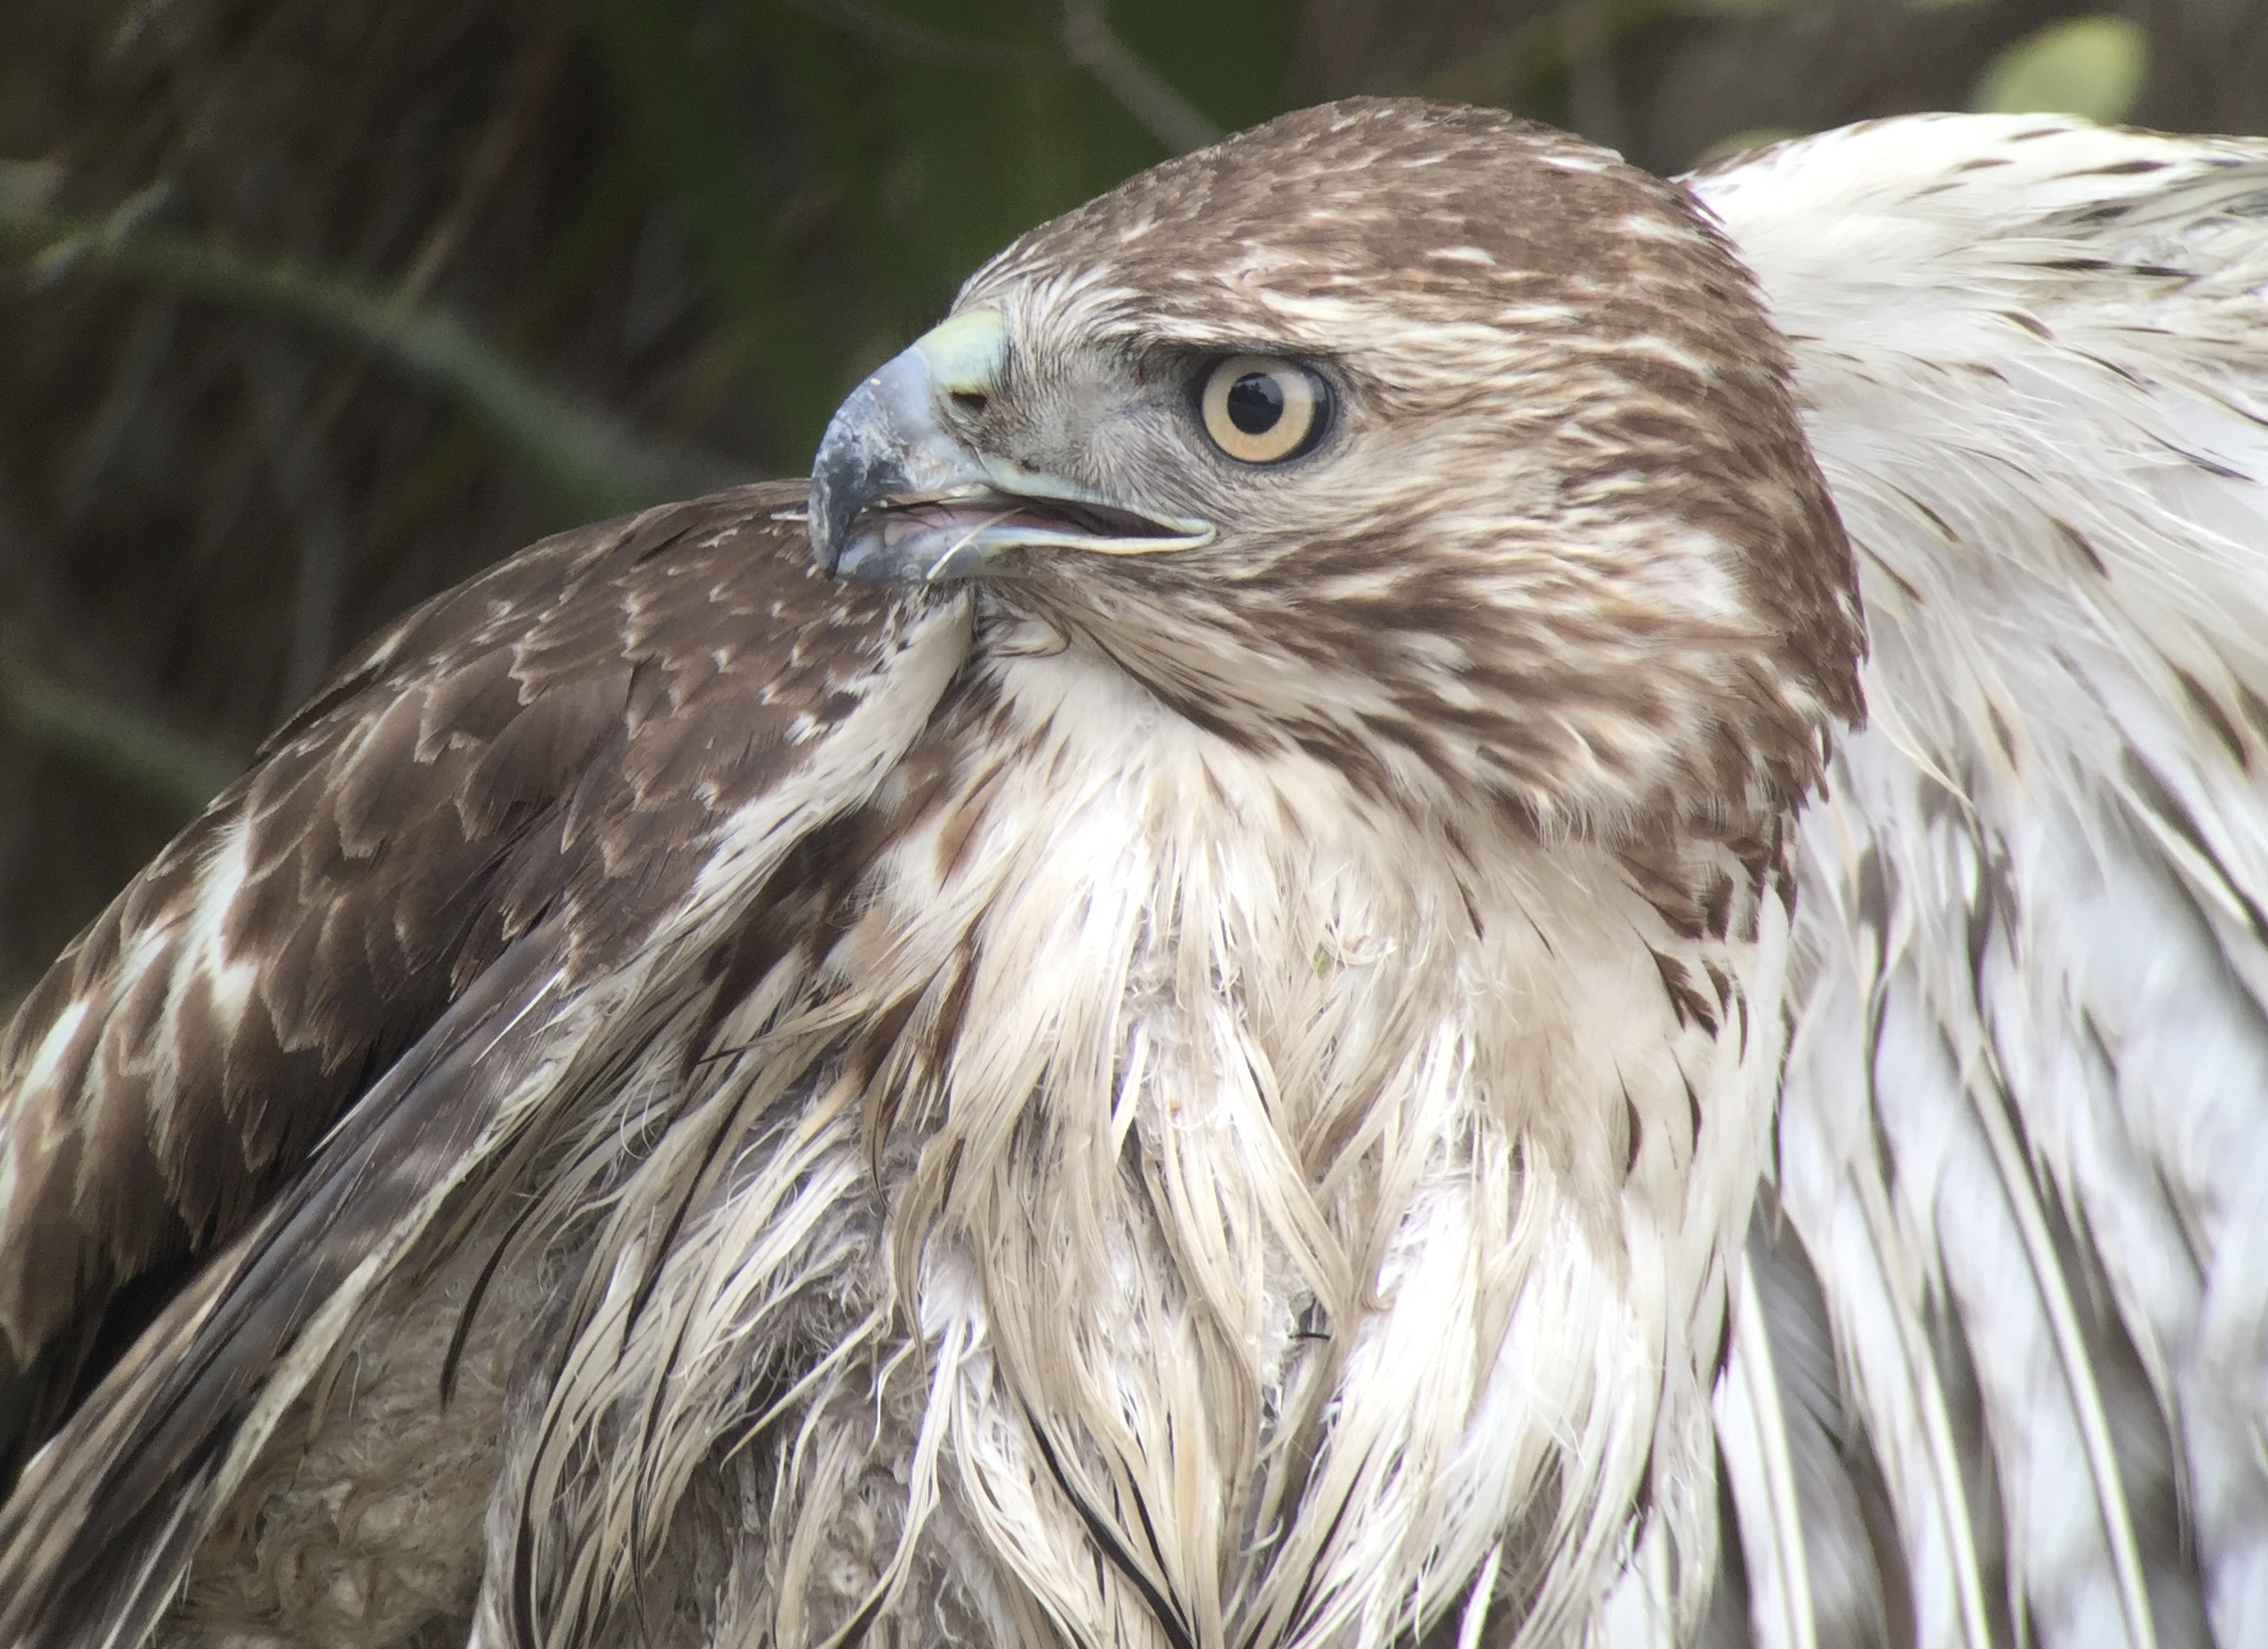 Red-tailed Hawk |  Digiscoped with iPhone + Swarovski ATX scope + Phone Skope adapter